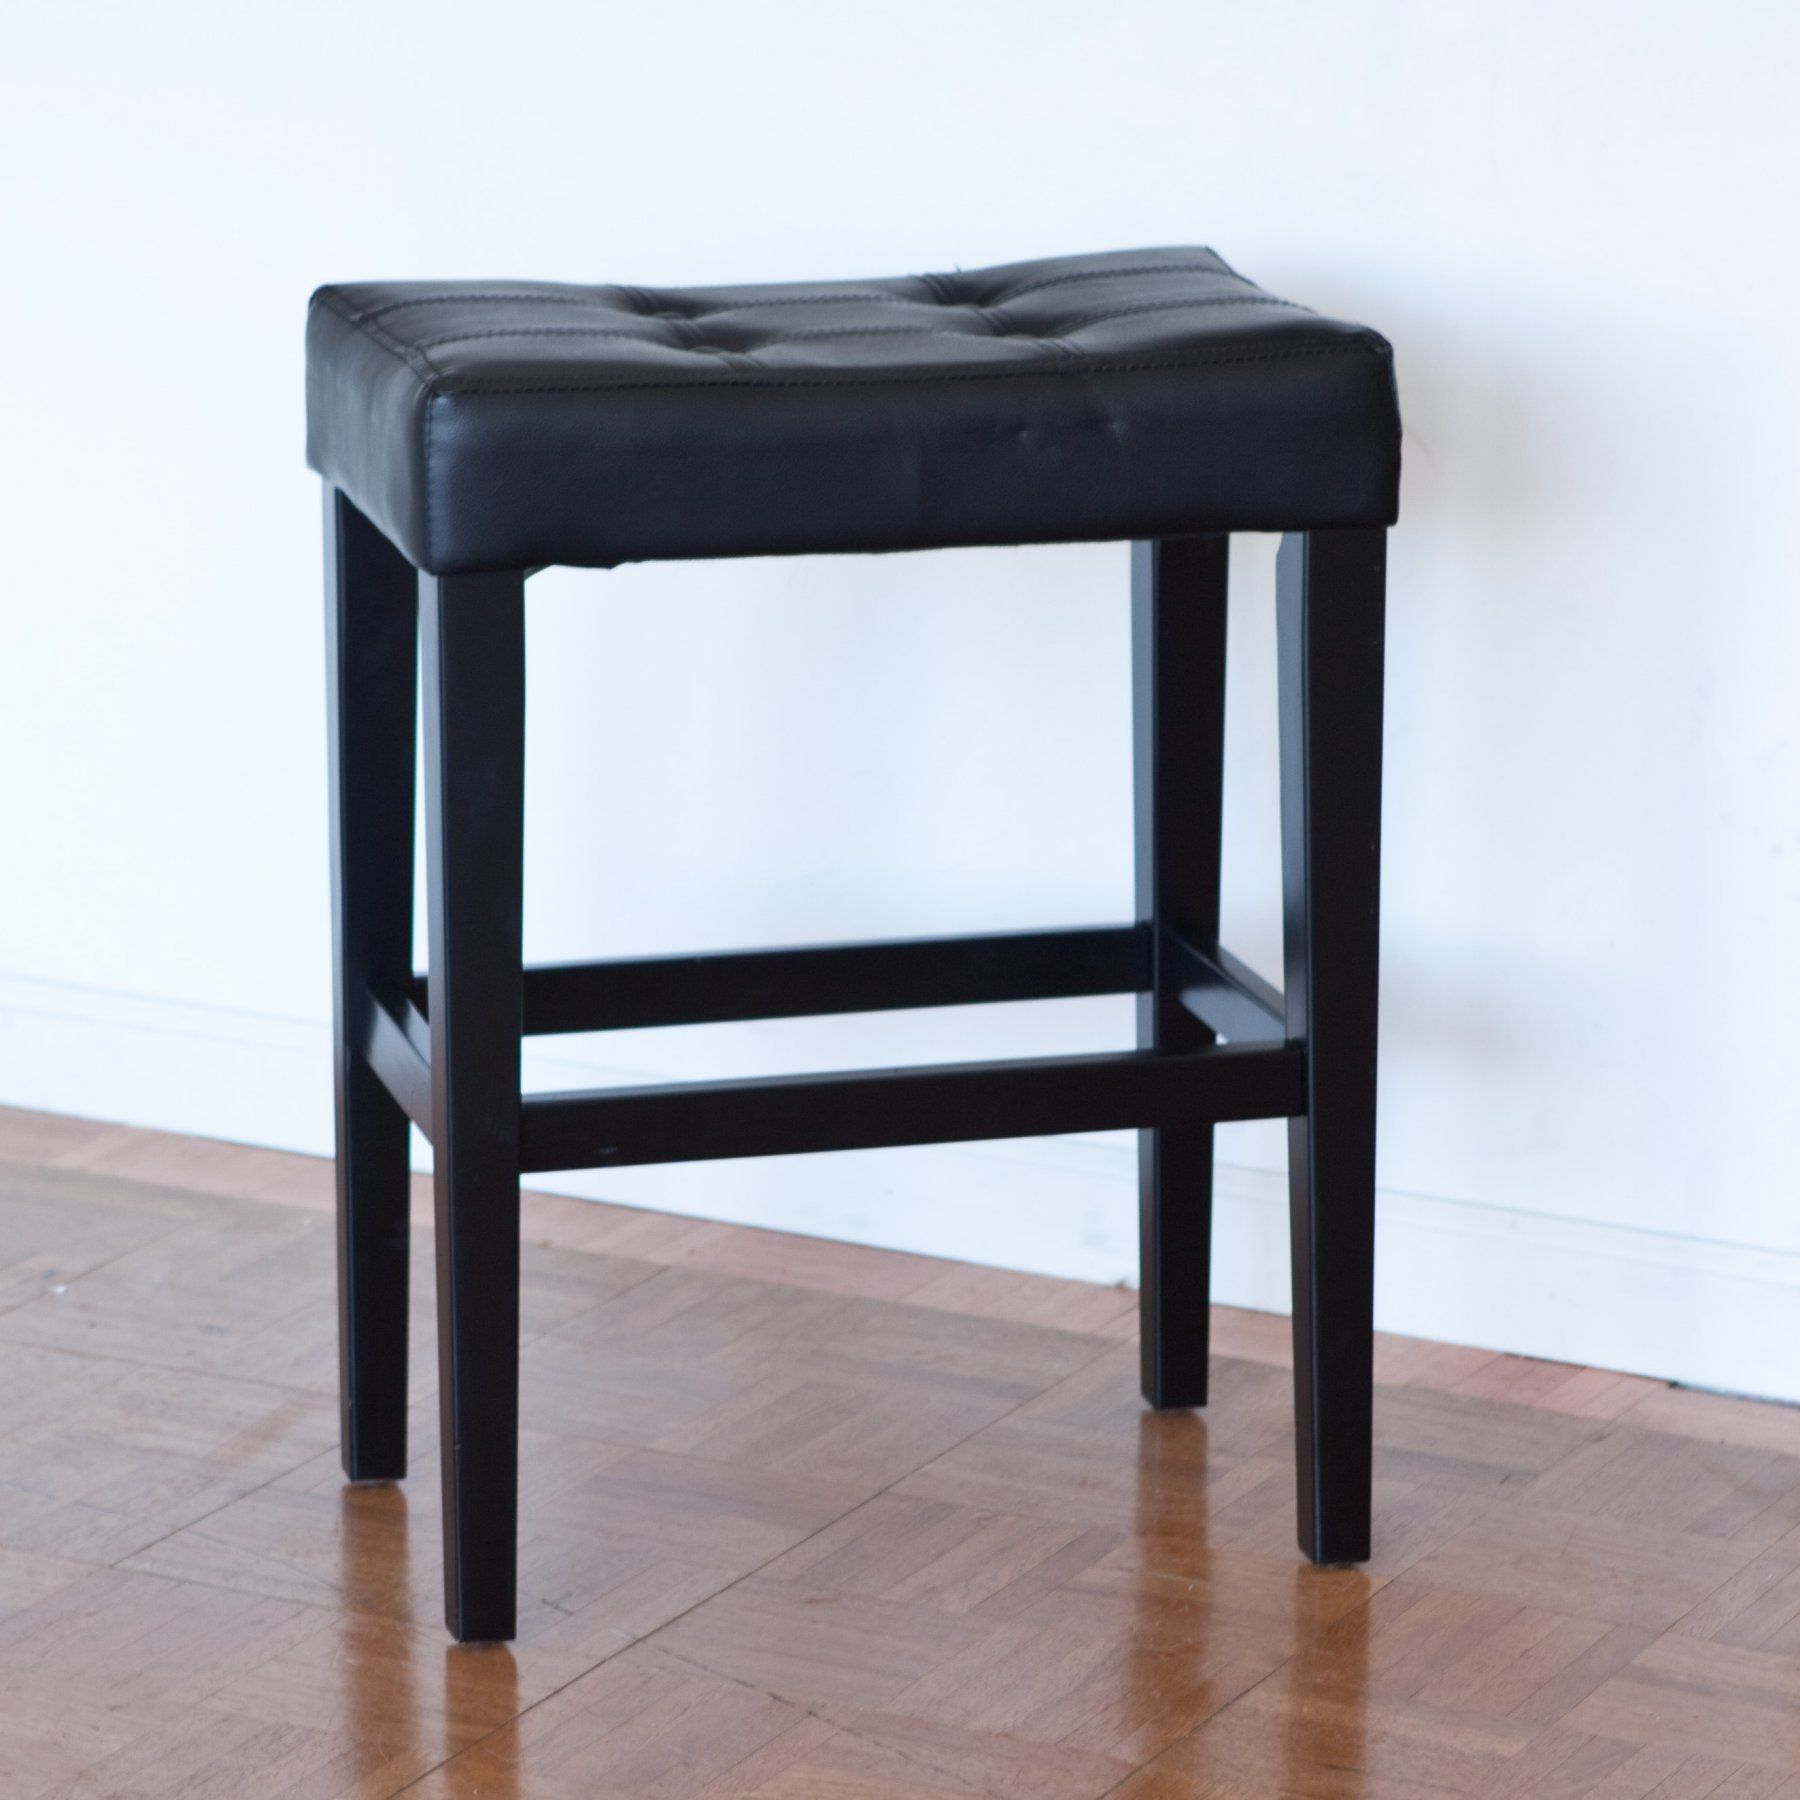 Palazzo 26 Inch Saddle Counter Stool Black Wsmp11 C26 Products